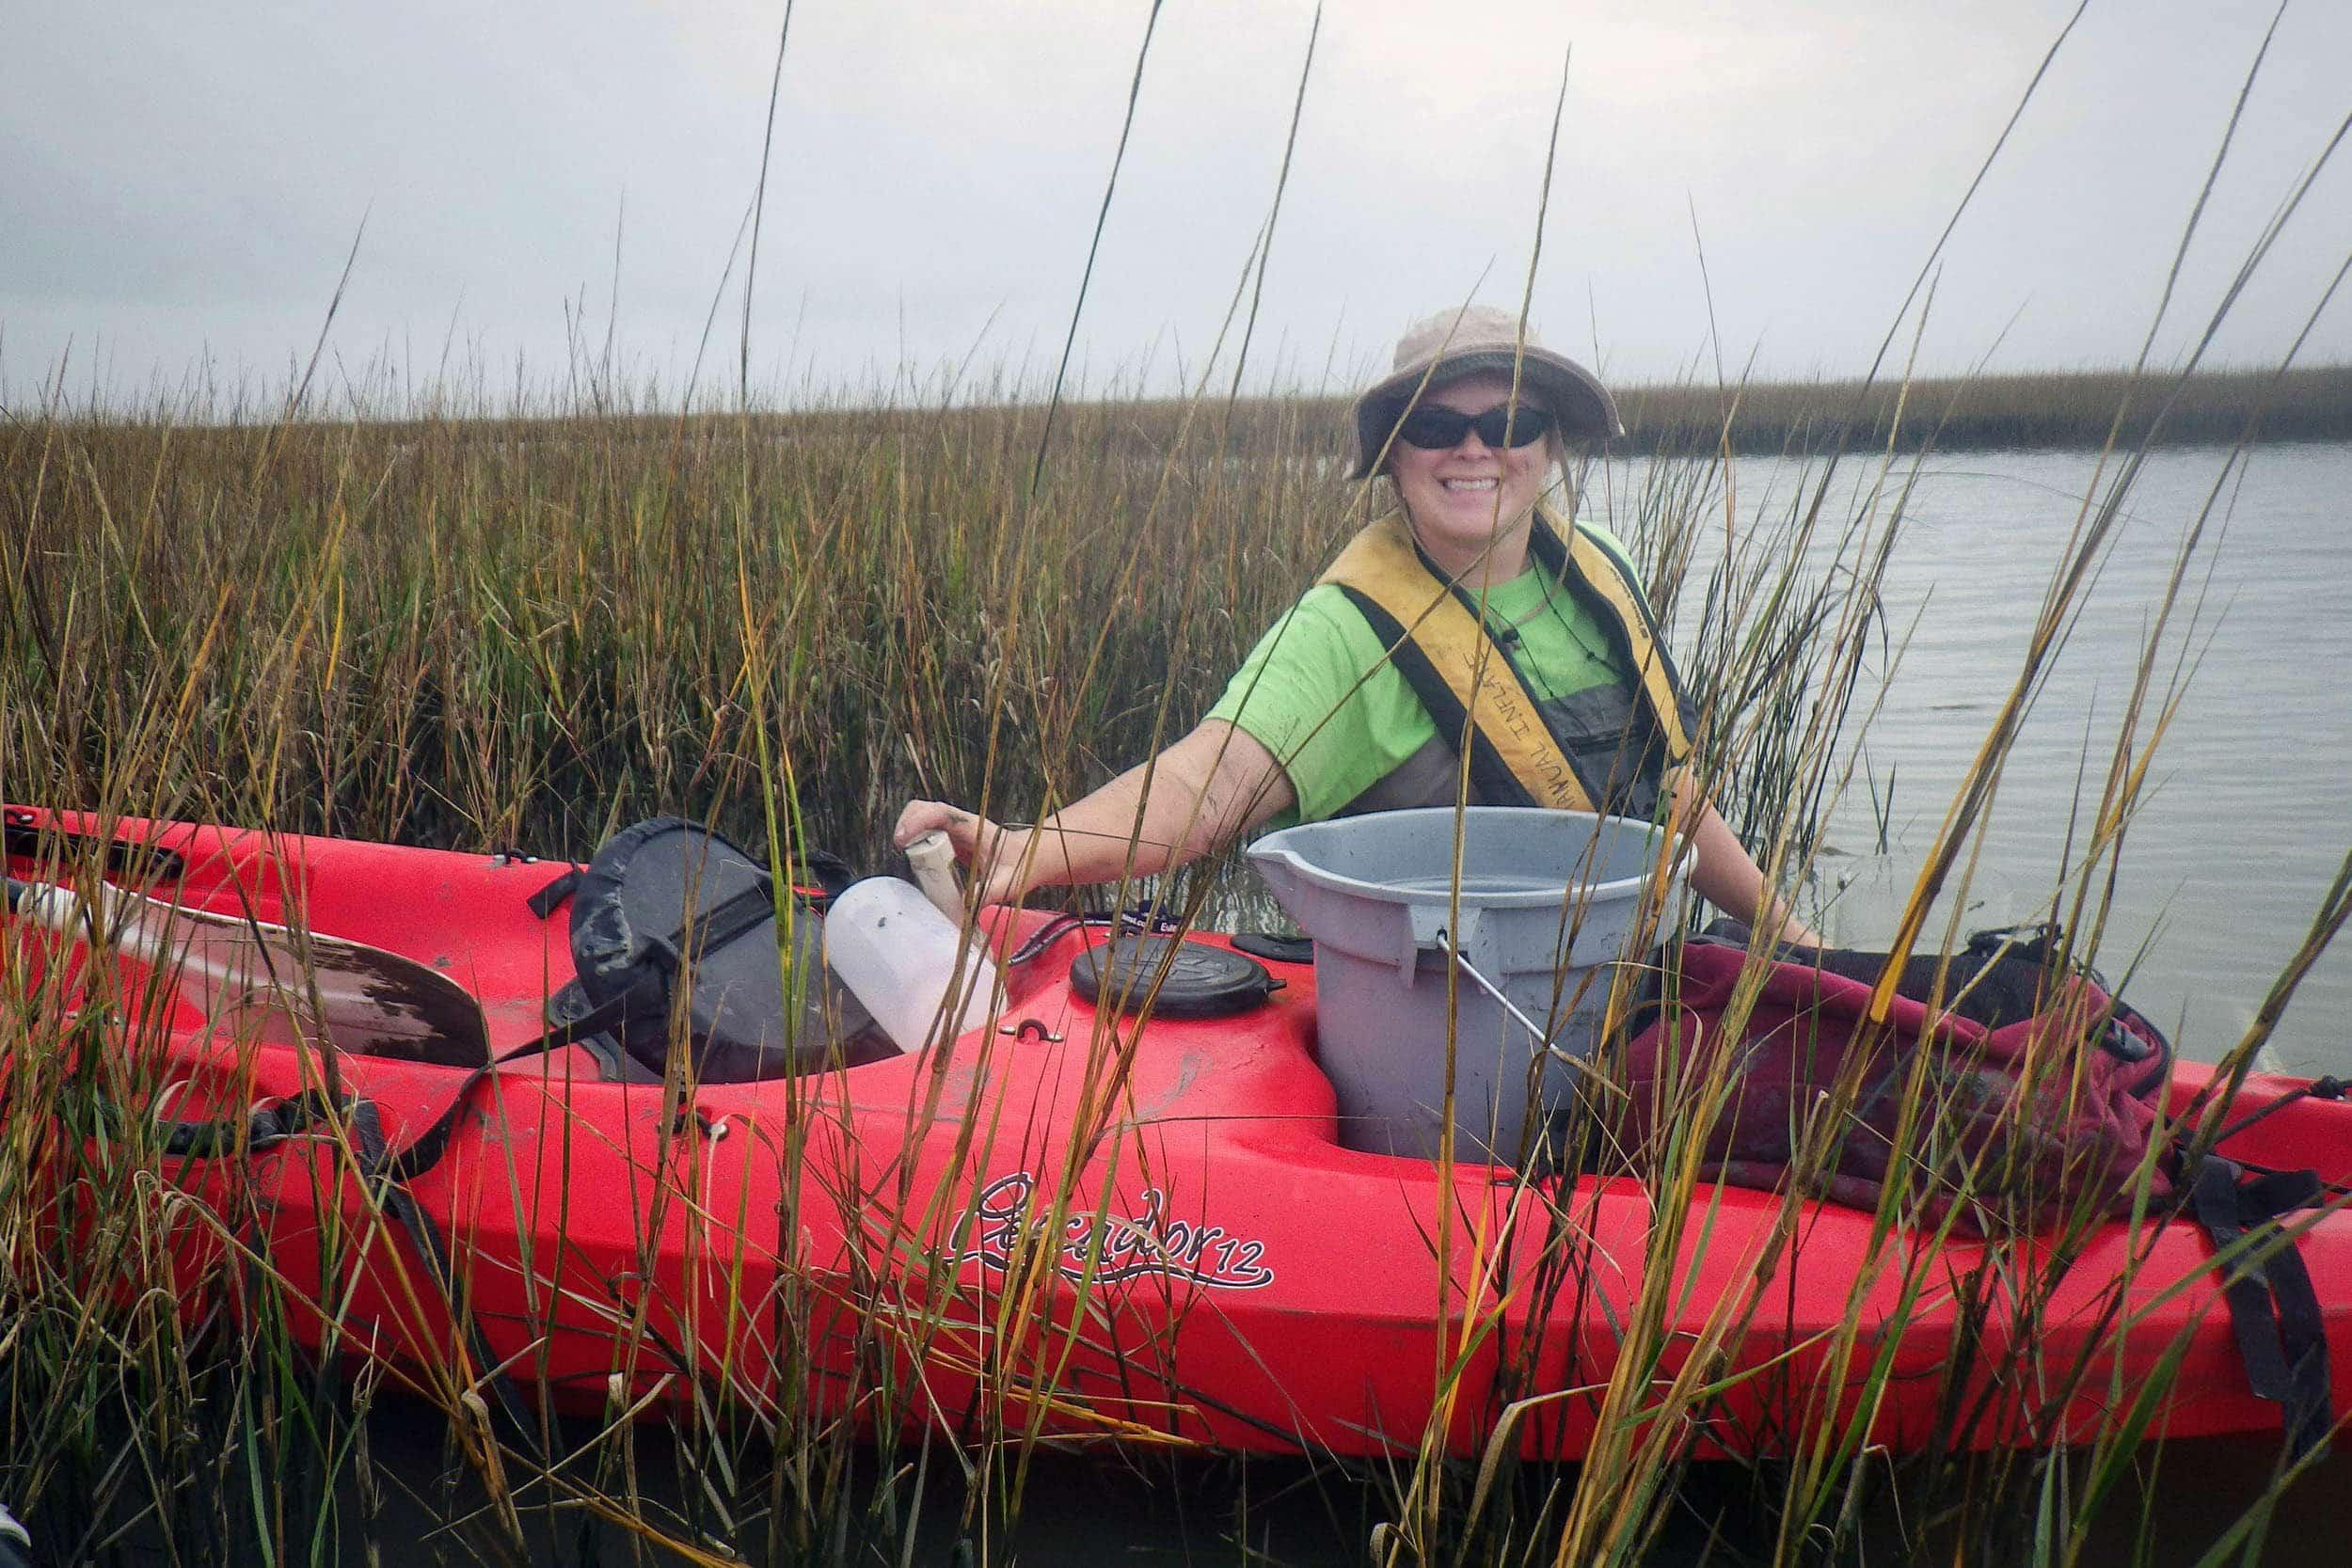 Natasha Zarnstorff, research assistant, collects marsh water quality samples at Jumbile Cove, Galveston, Texas.